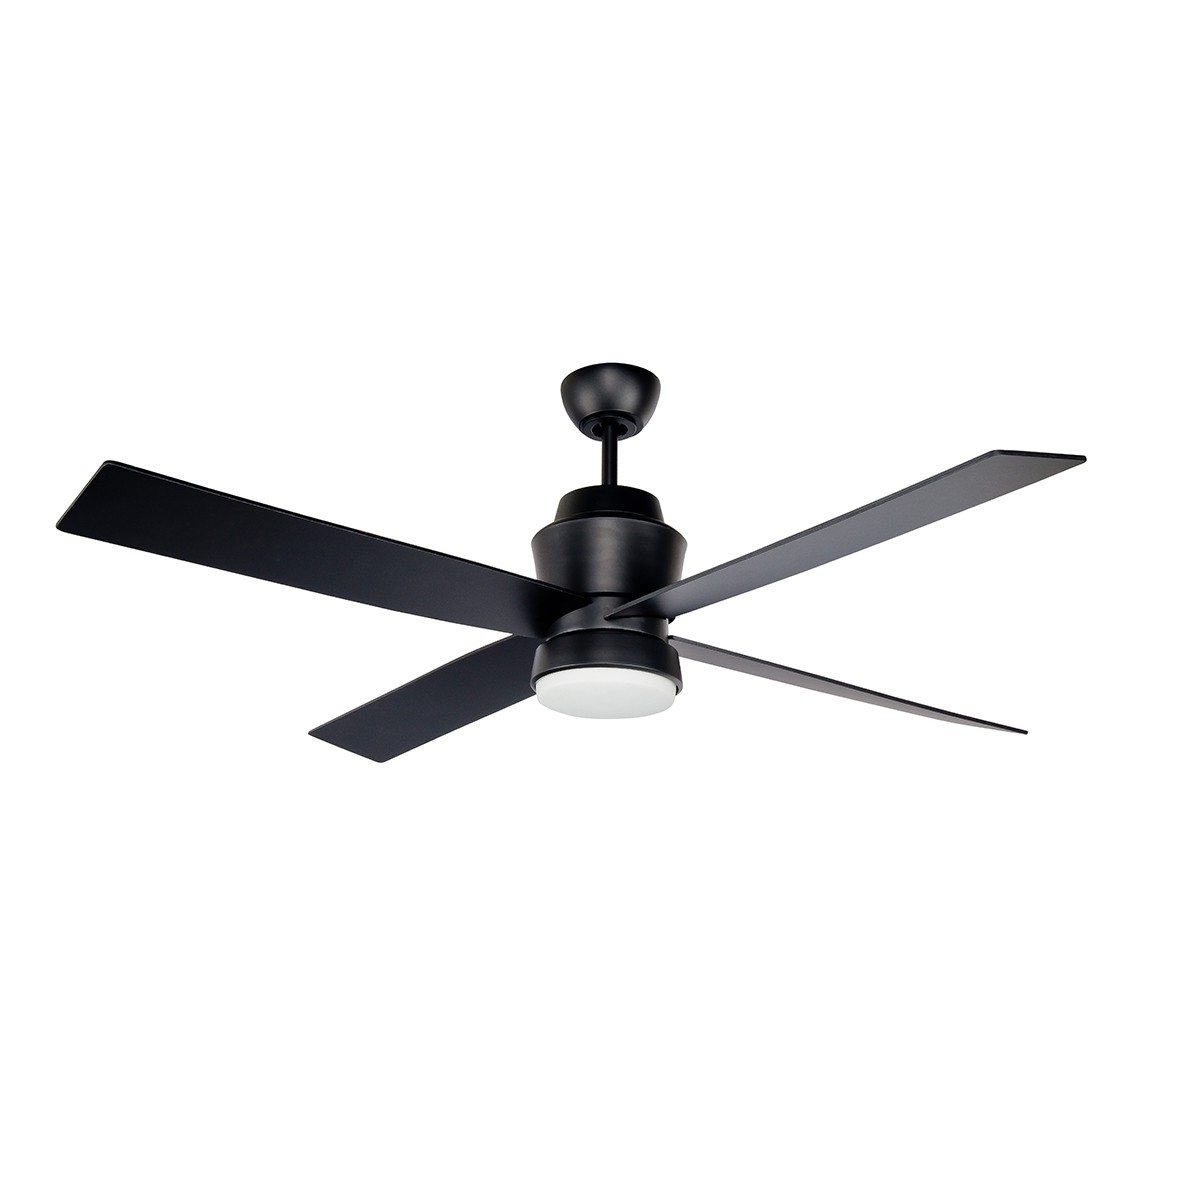 Prologue Outdoor Ceiling Fan :: Stori Modern For 2019 Black Outdoor Ceiling Fans With Light (View 14 of 20)